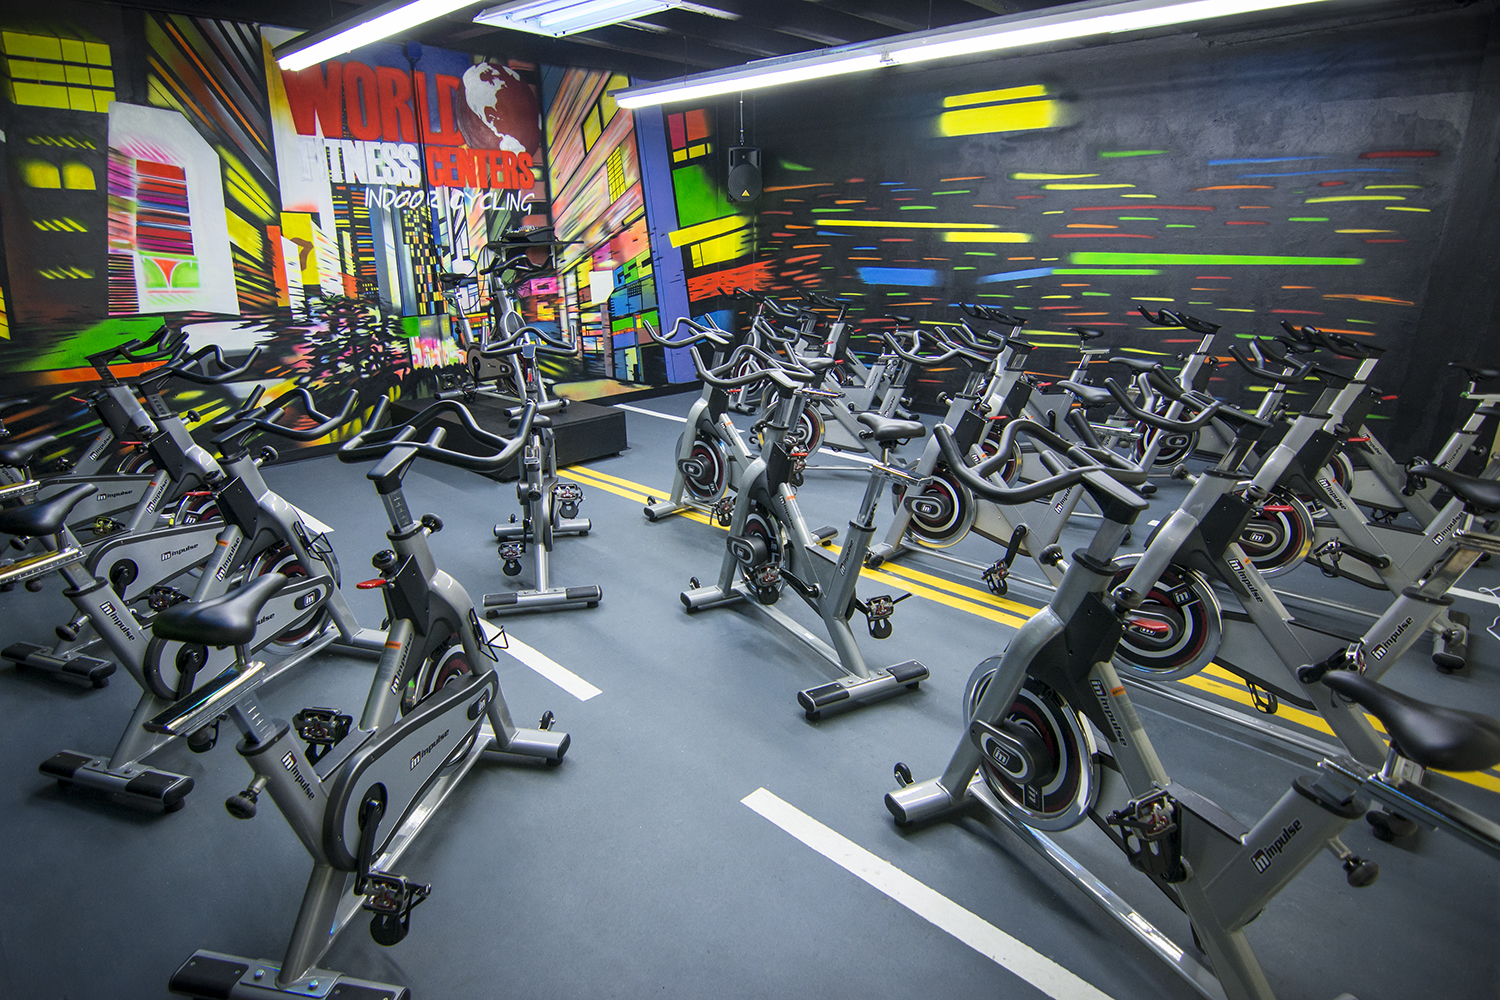 World Fitness Centers - photo